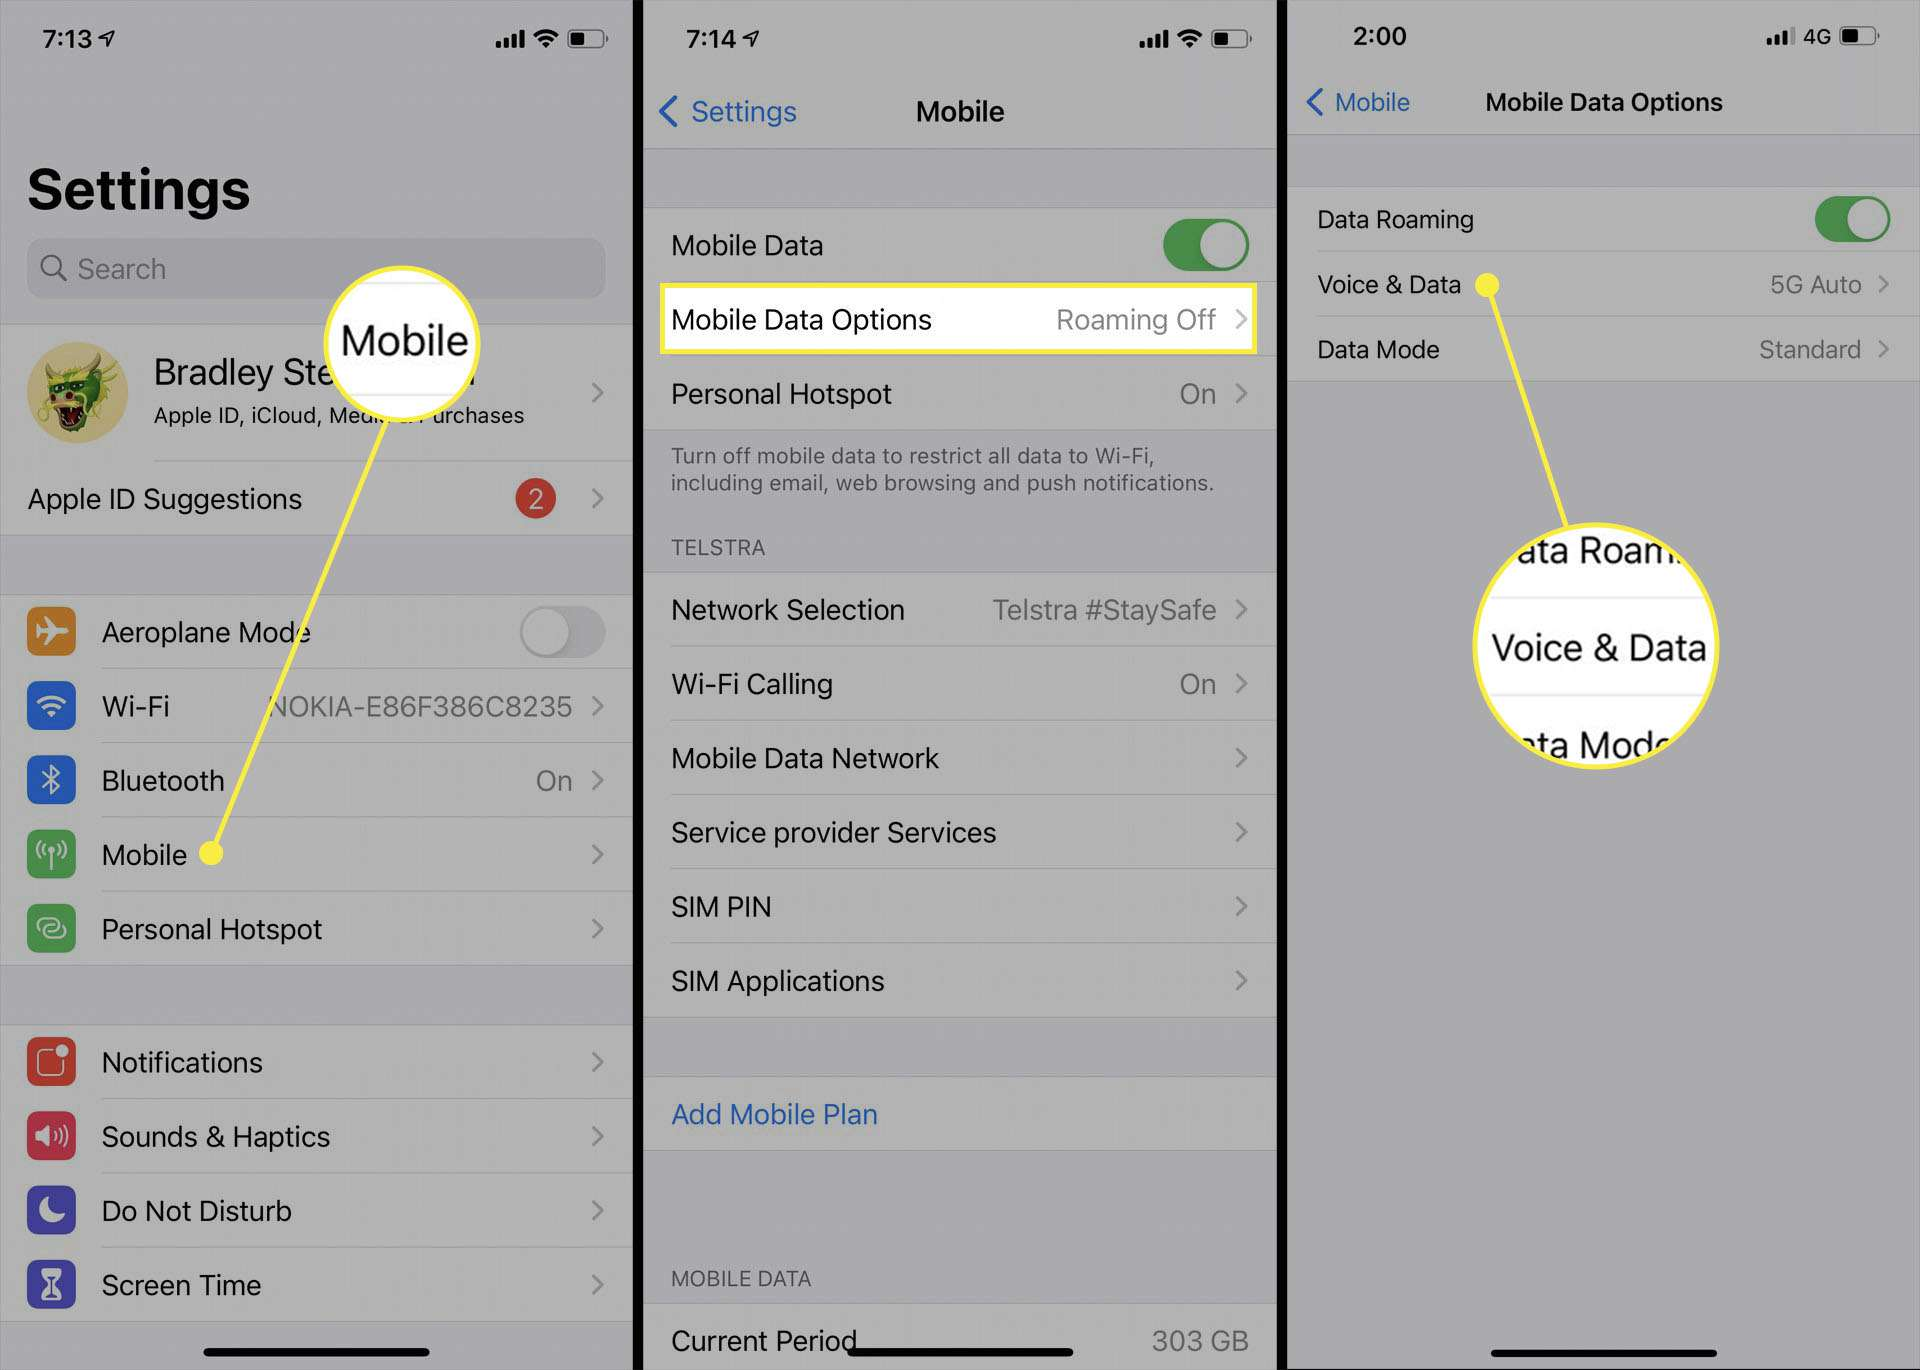 iPhone 5G options in the iOS Settings app.